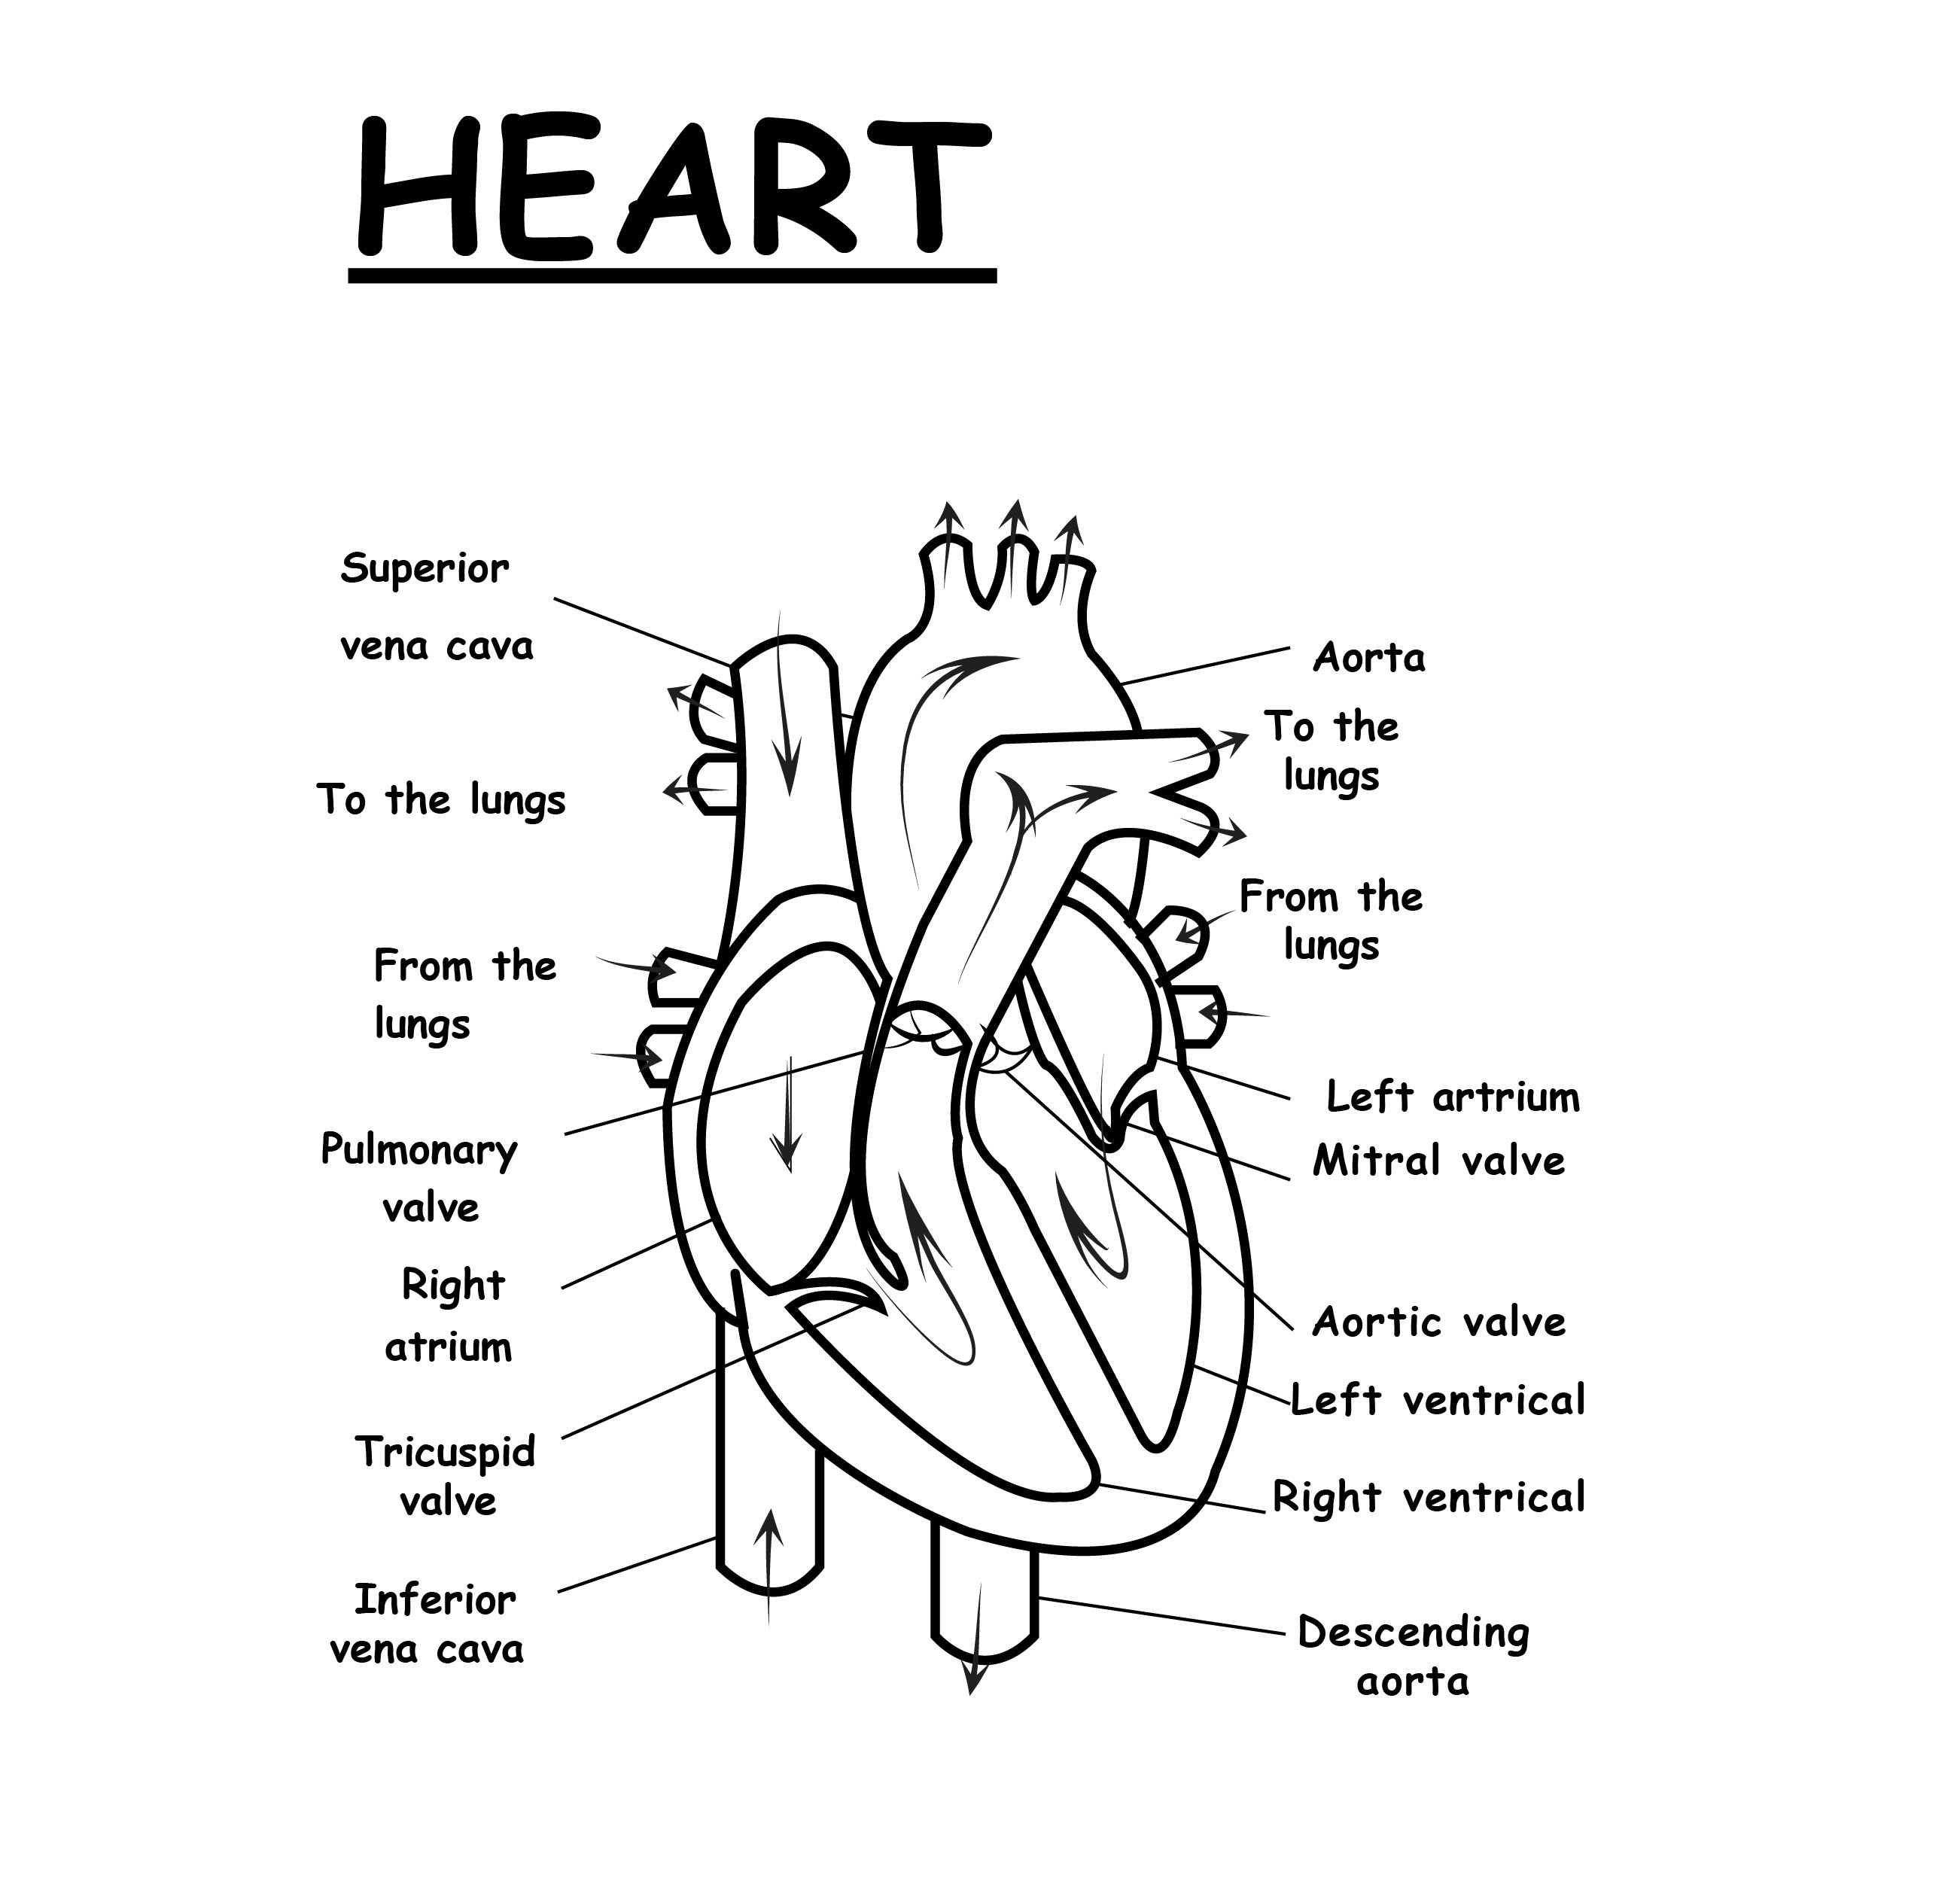 33 Human Heart To Label - Best Labels Ideas 2020